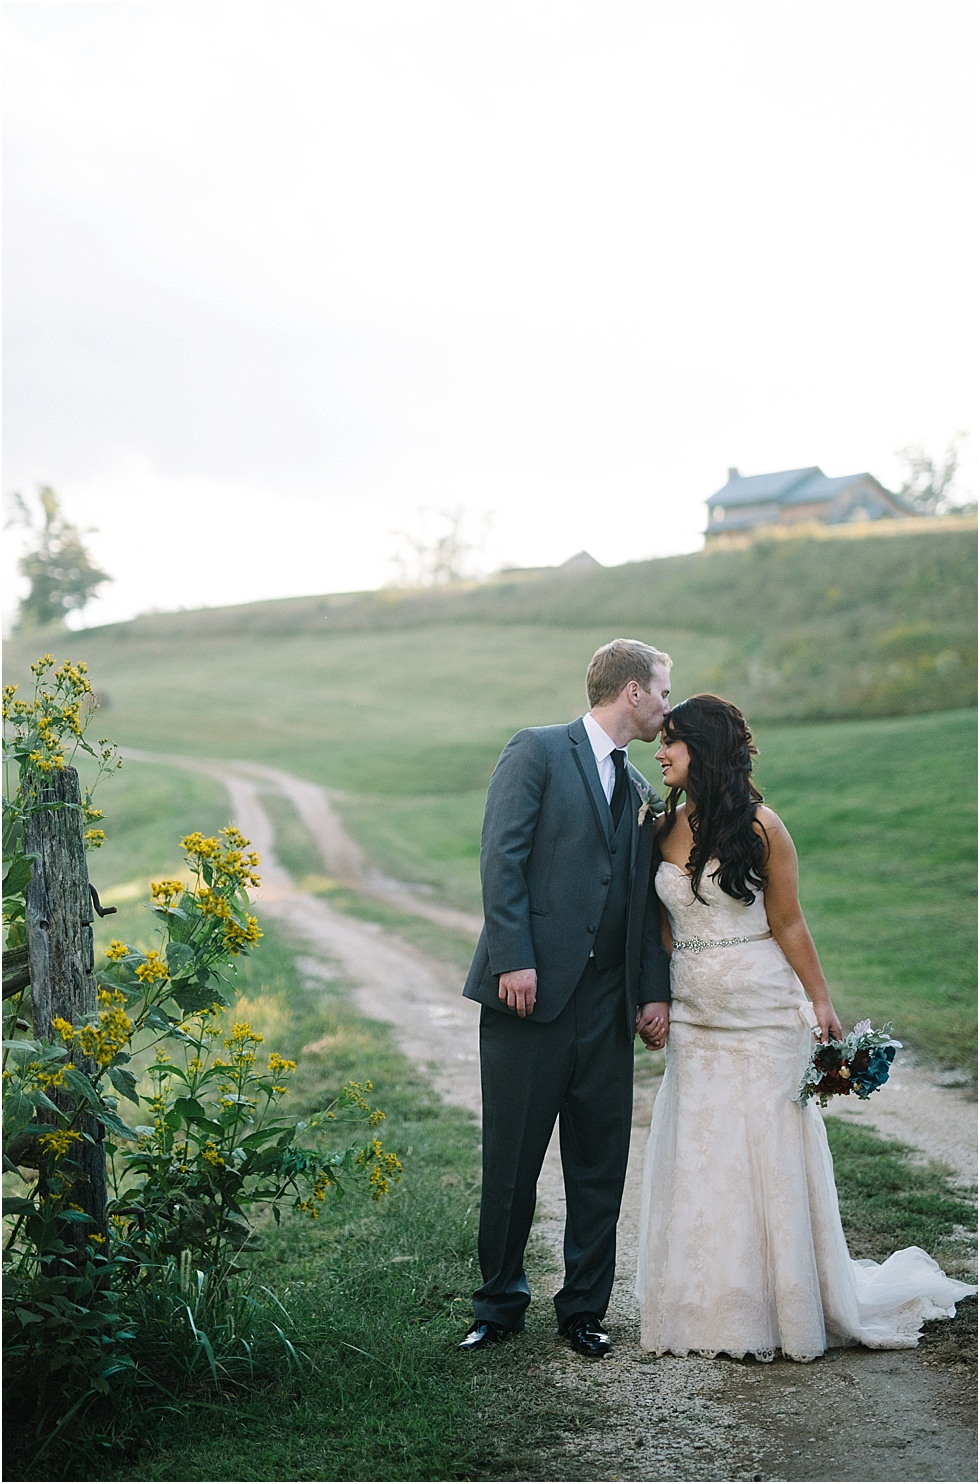 benedict haid farm wedding portrait 2